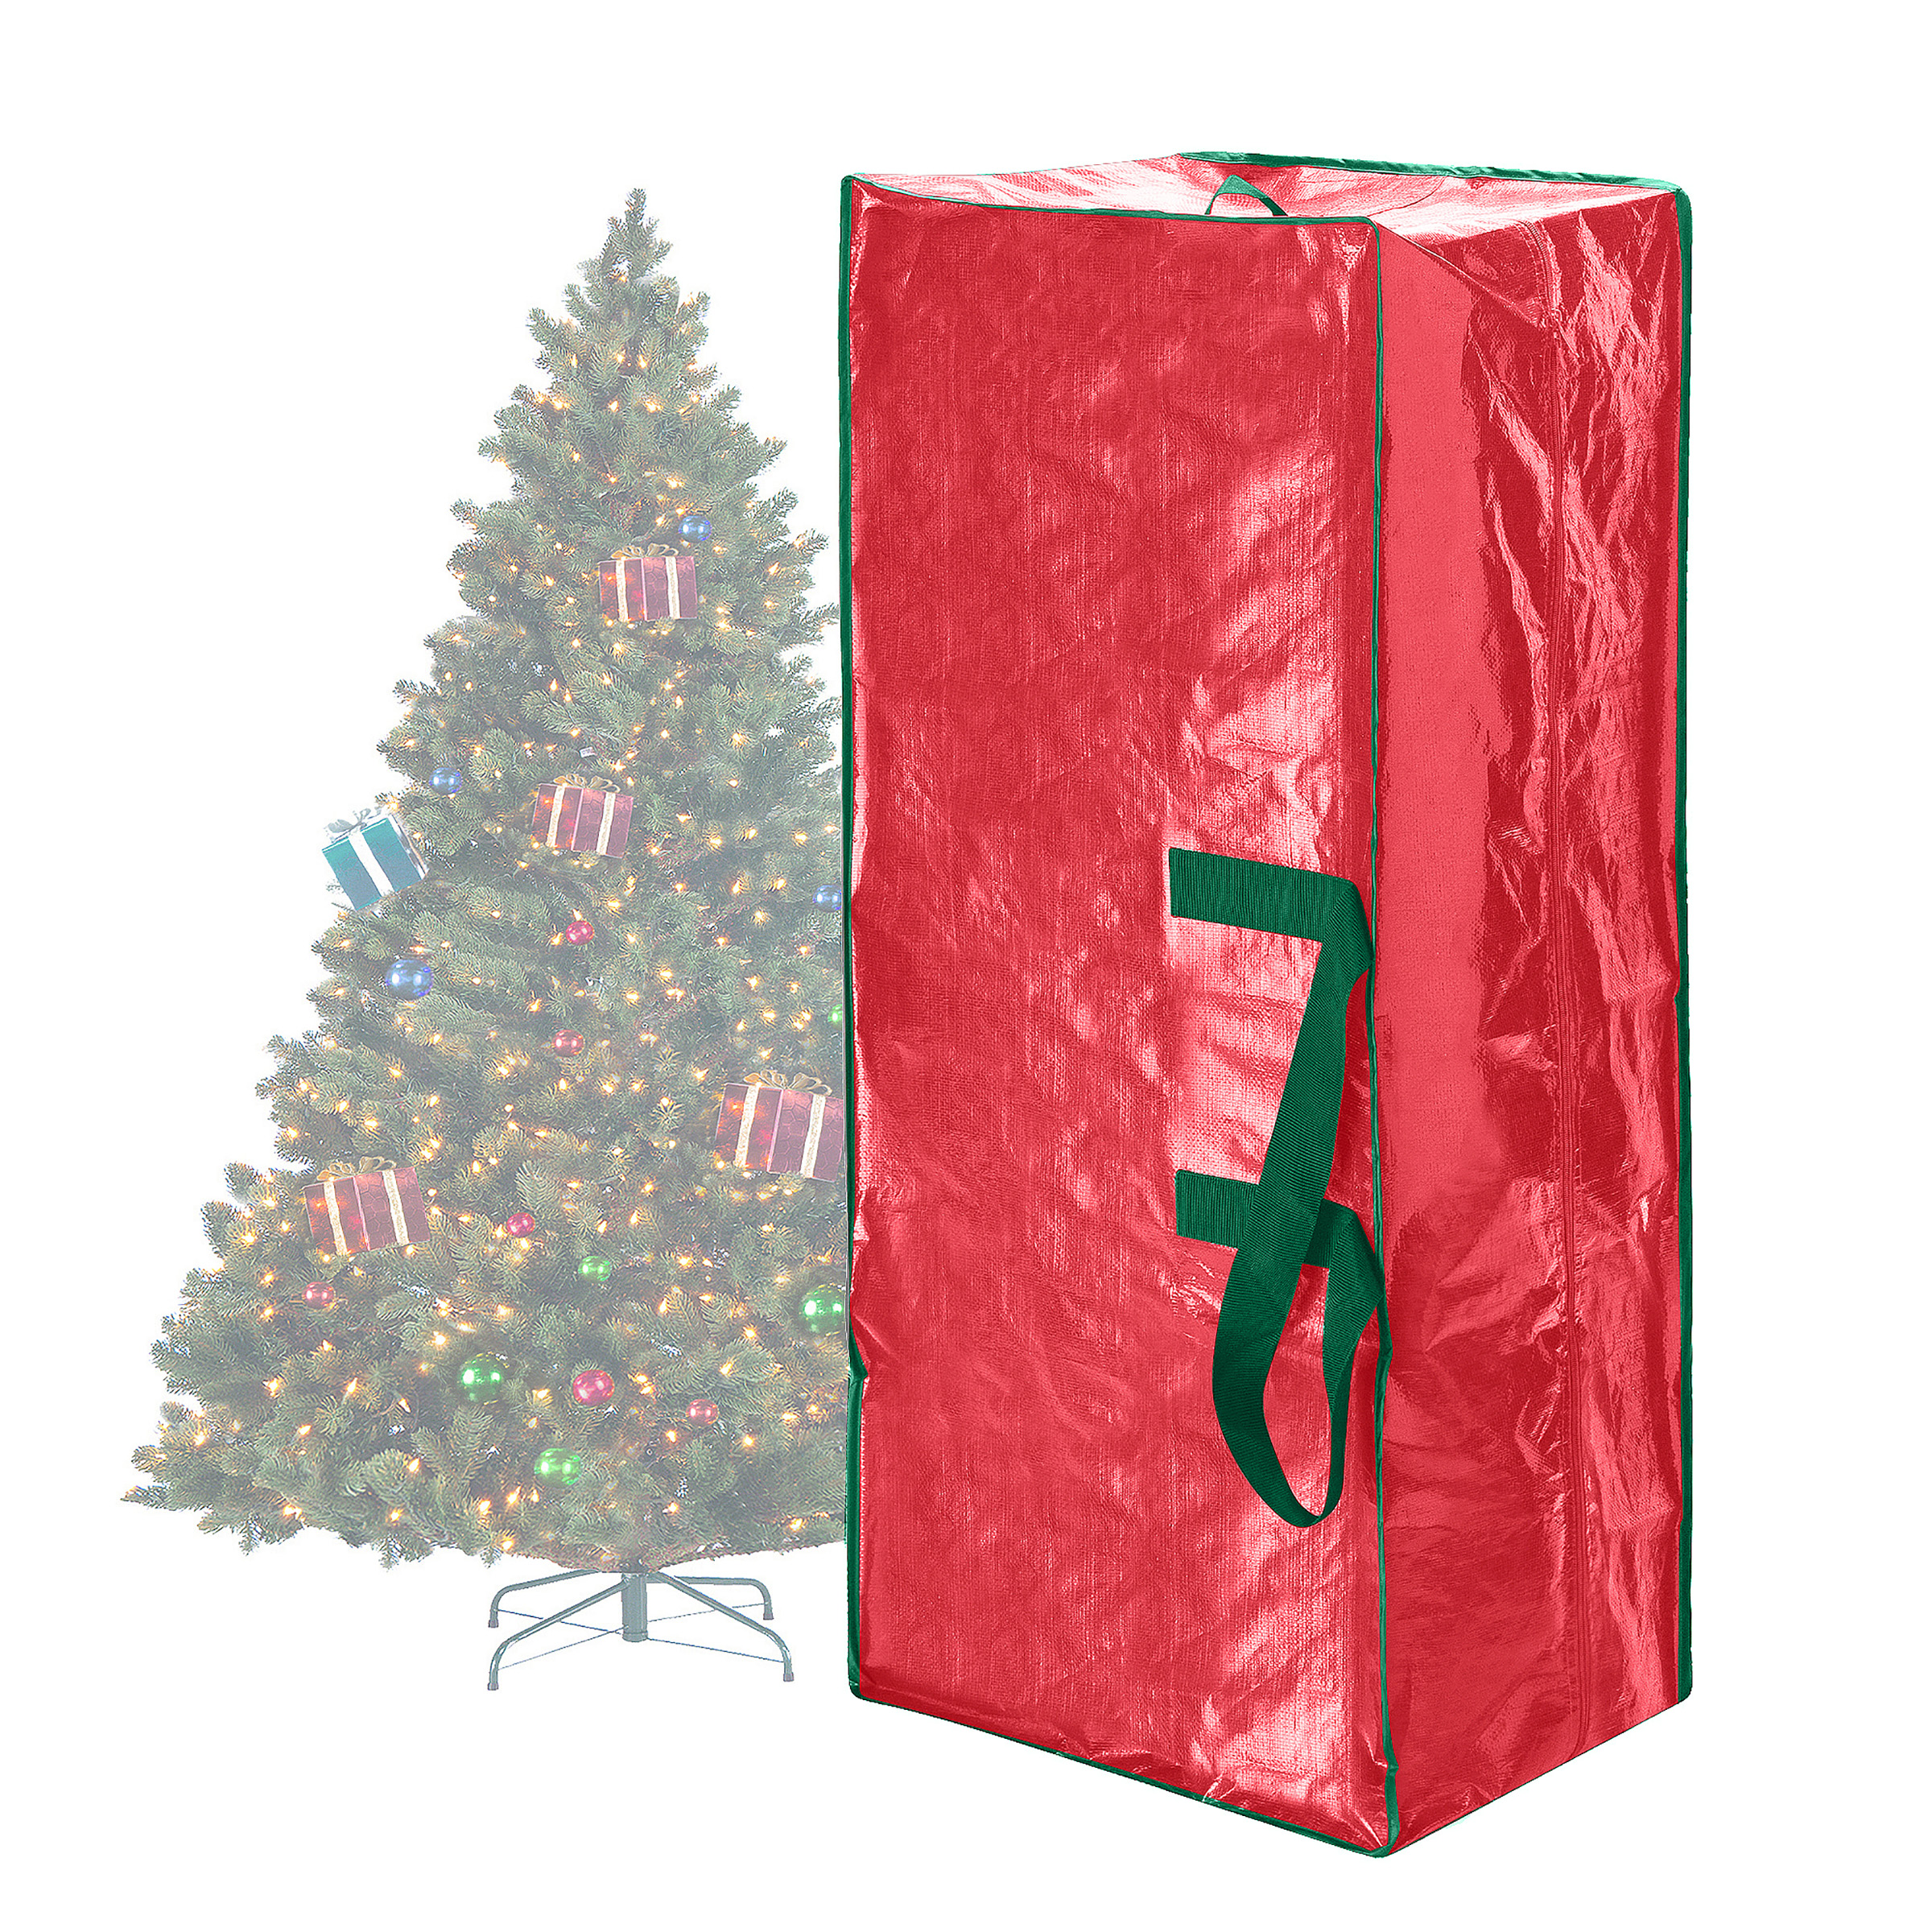 Elf Stor Premium Christmas Tree Bag Holiday Large For up to 7.5 Ft Tree